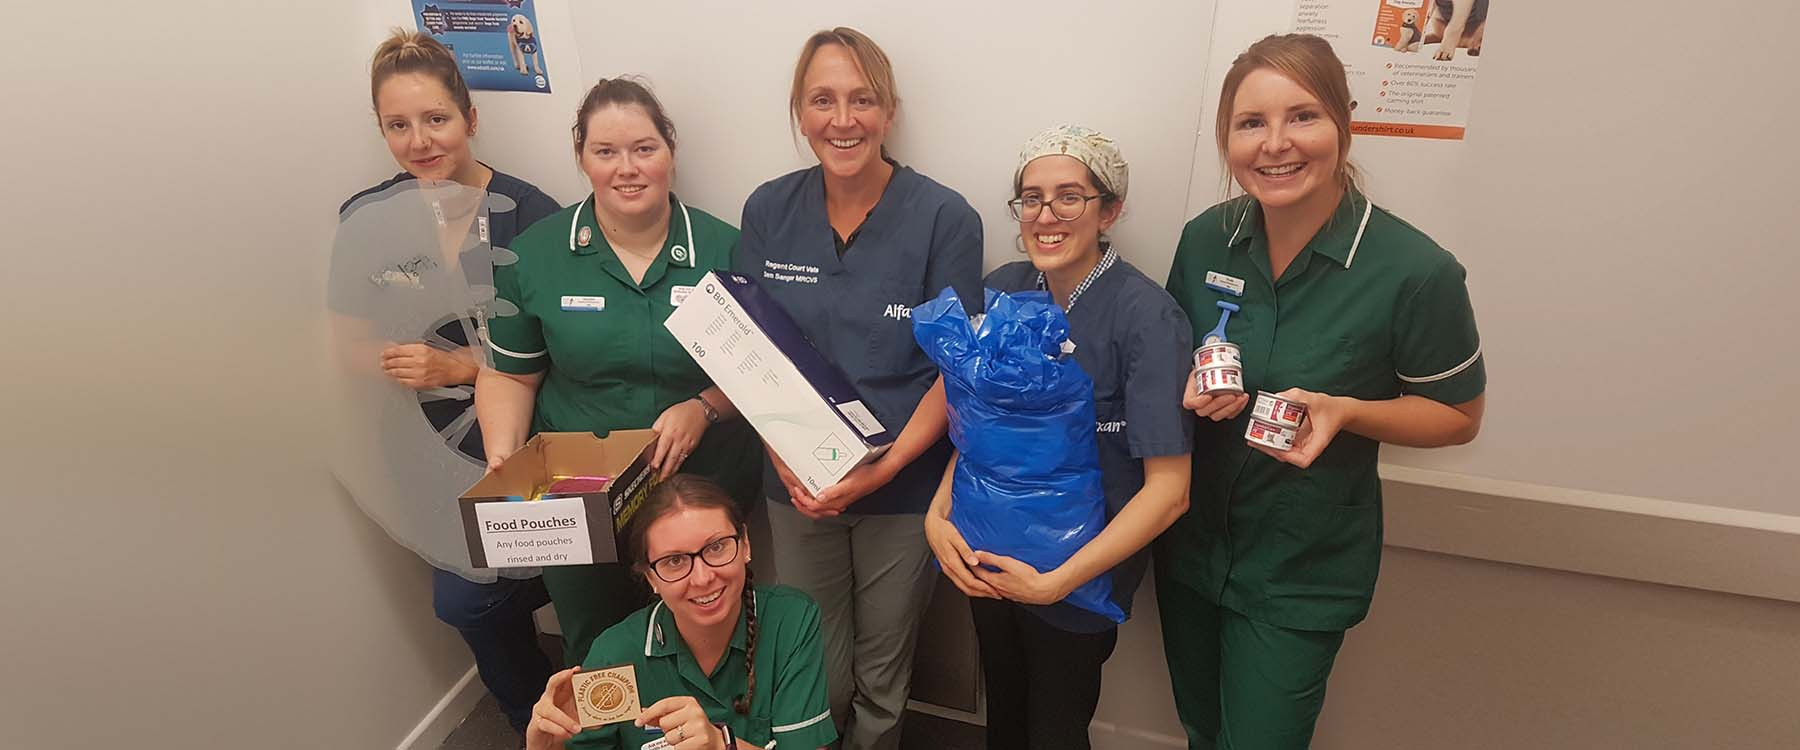 Cornwall vet practice goes green to help the environment